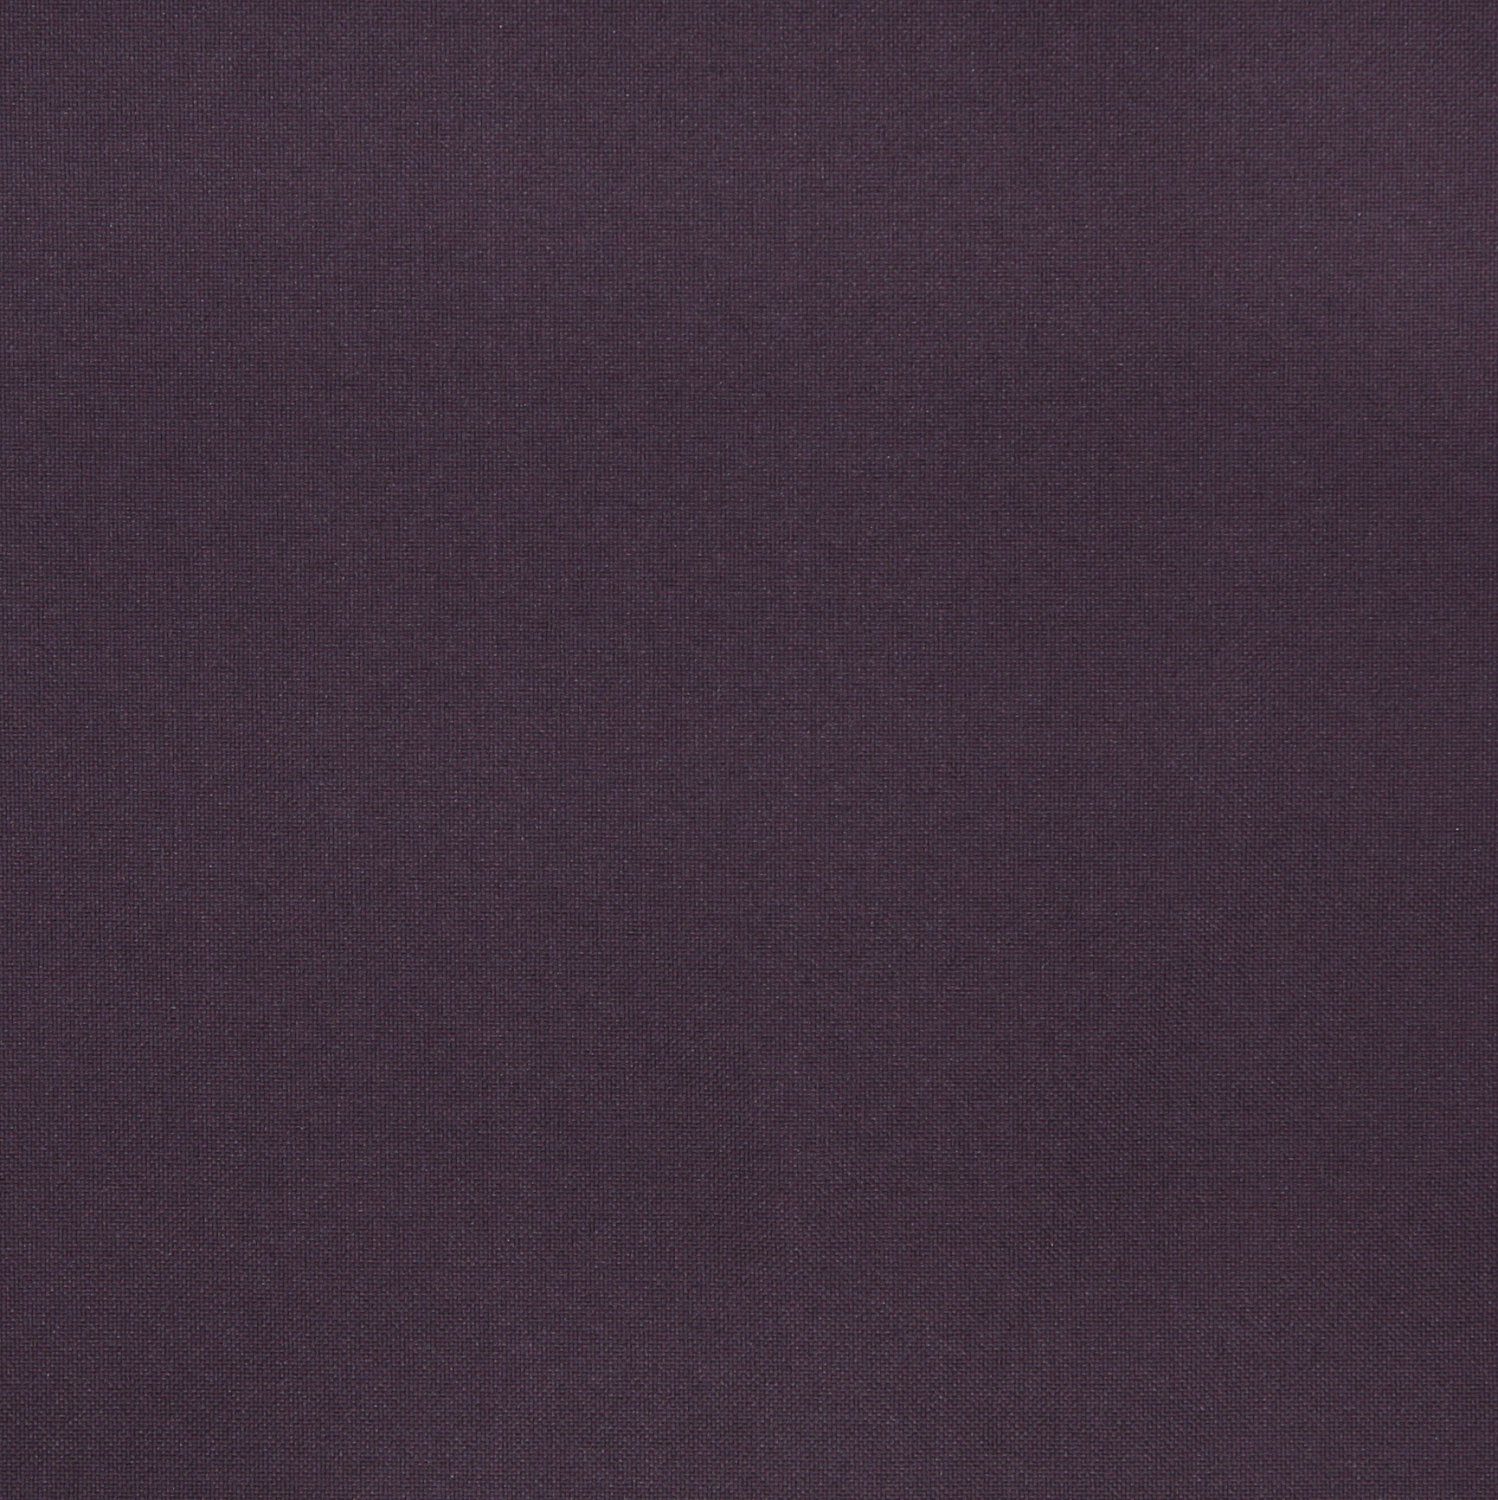 j601 purple solid tweed commercial automotive church pew upholstery grade fabric by the yard. Black Bedroom Furniture Sets. Home Design Ideas